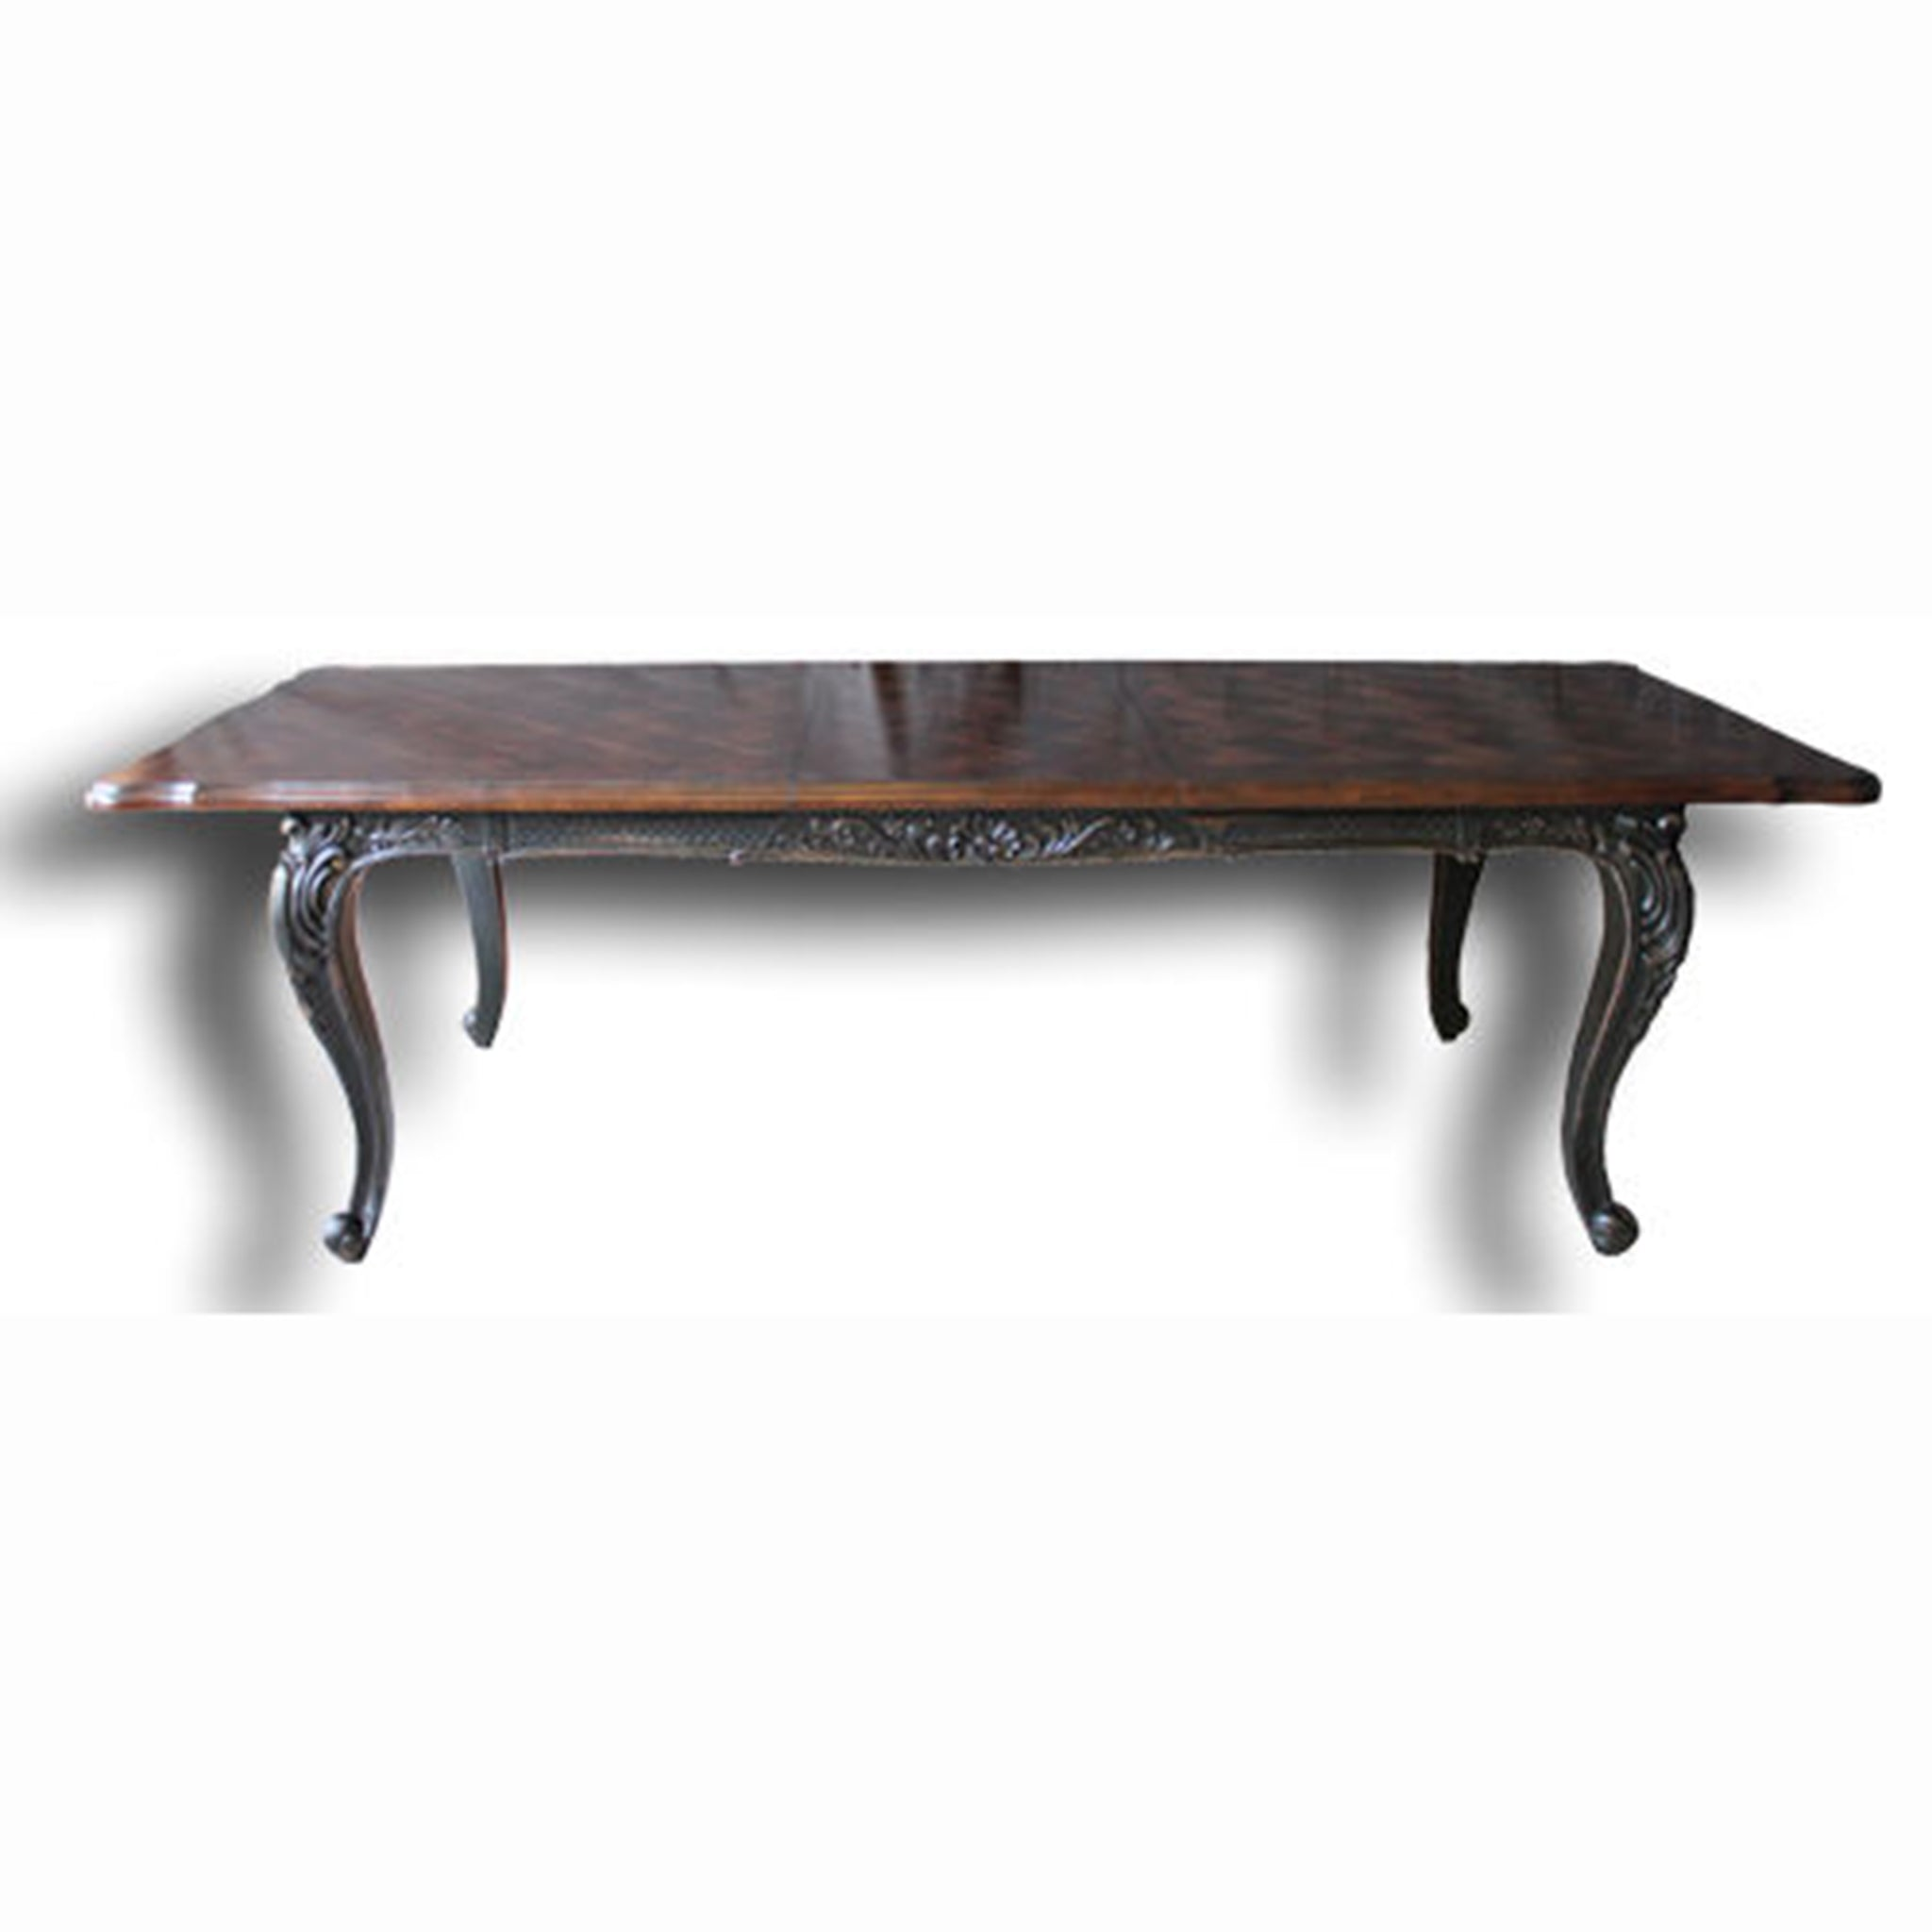 French Extension Dining Table Black Distressed - Furniture on Main